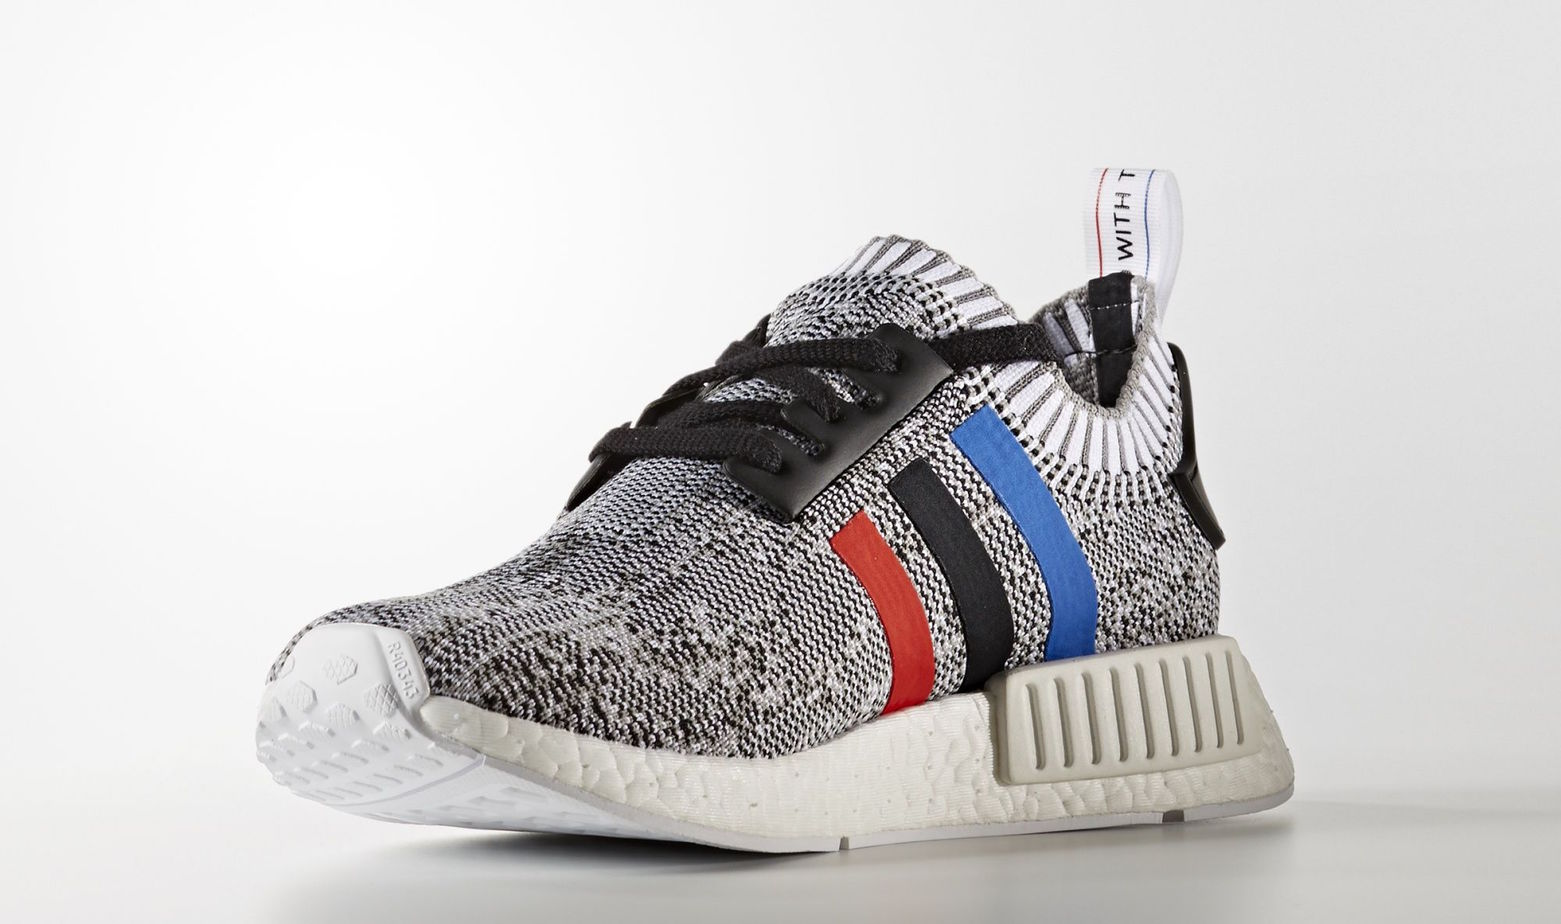 adidas NMD R1 Primeknit White Grey Tricolore Stripes